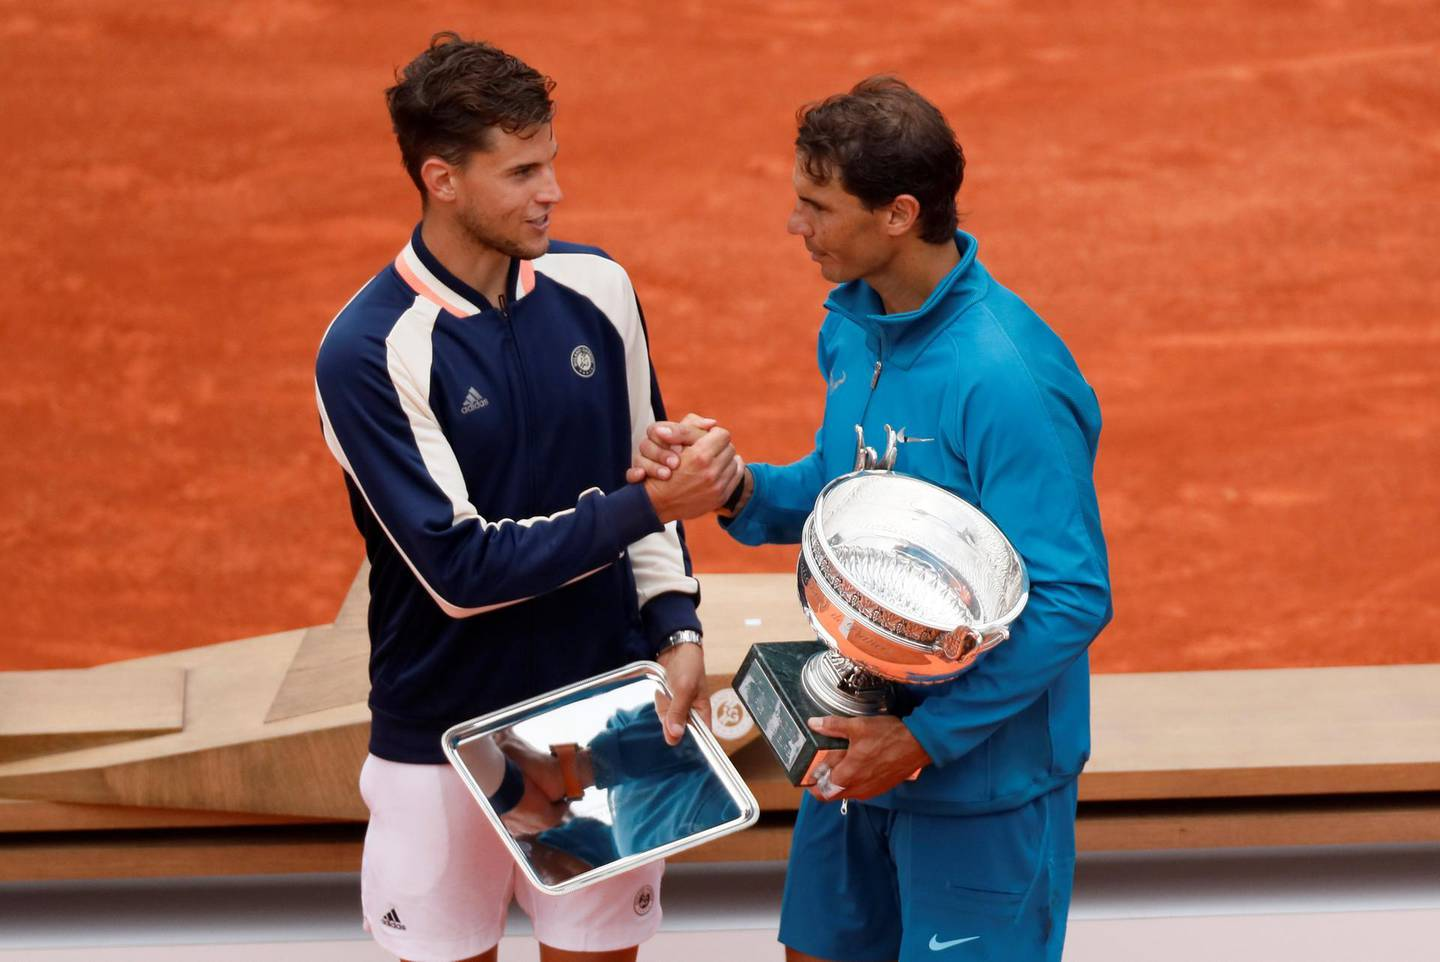 Tennis - French Open - Roland Garros, Paris, France - June 10, 2018   Spain's Rafael Nadal shakes hands with Austria's Dominic Thiem after winning their final   REUTERS/Gonzalo Fuentes